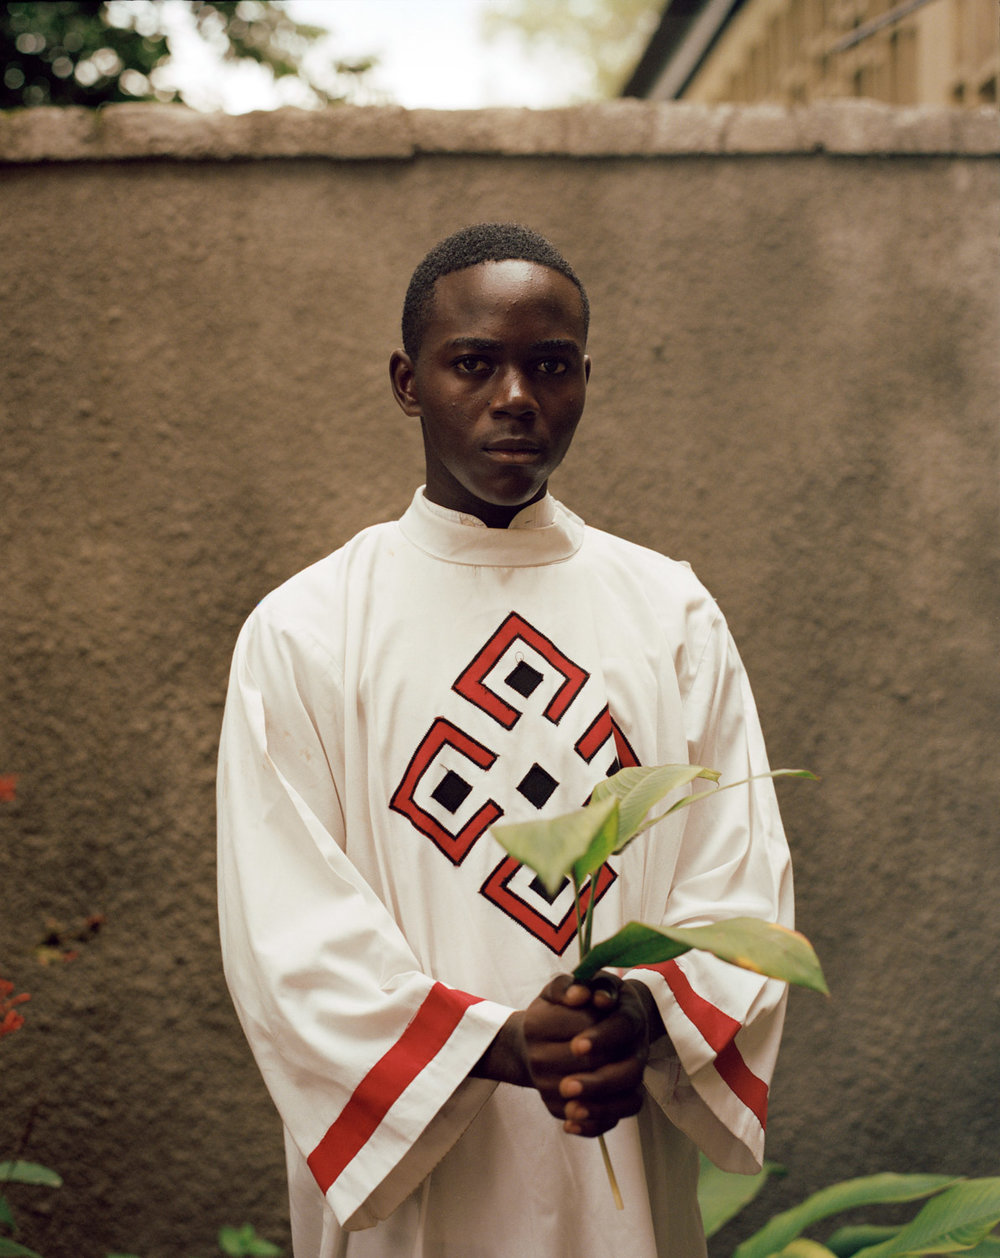 Acolyte Frederick Tshimanga. La Paroisse St. Dominique, Limete, Kinshasa. This church is heavily involved in anti-government activity and a protest march in early 2018 was dispersed with live ammunition and tear gas.